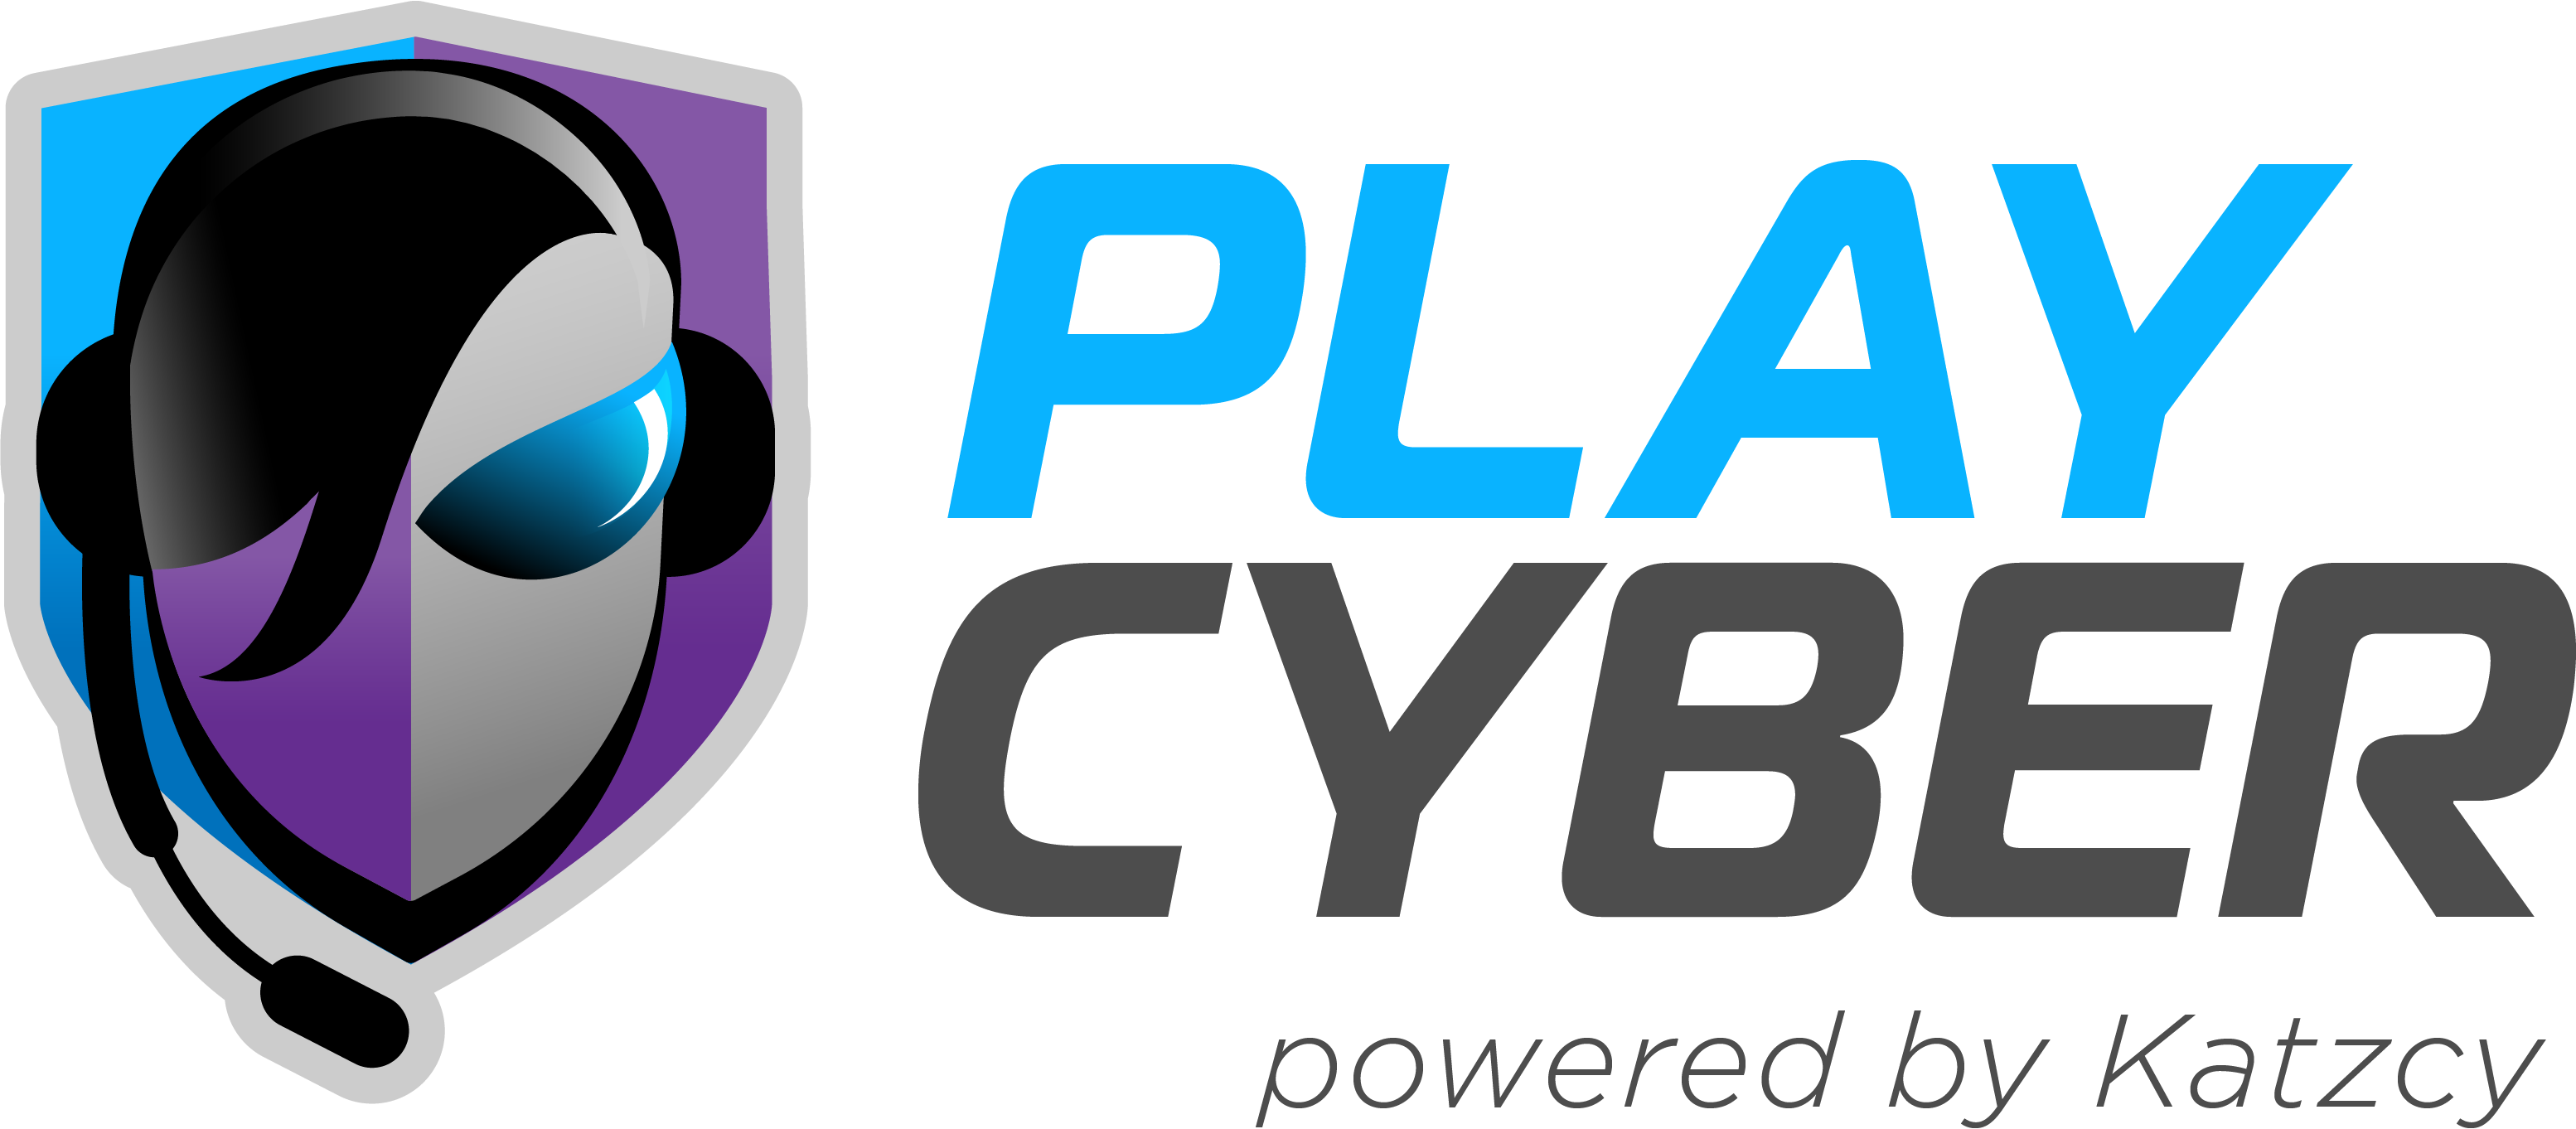 KATZCY_CyberPlay_logo_dark_tagline